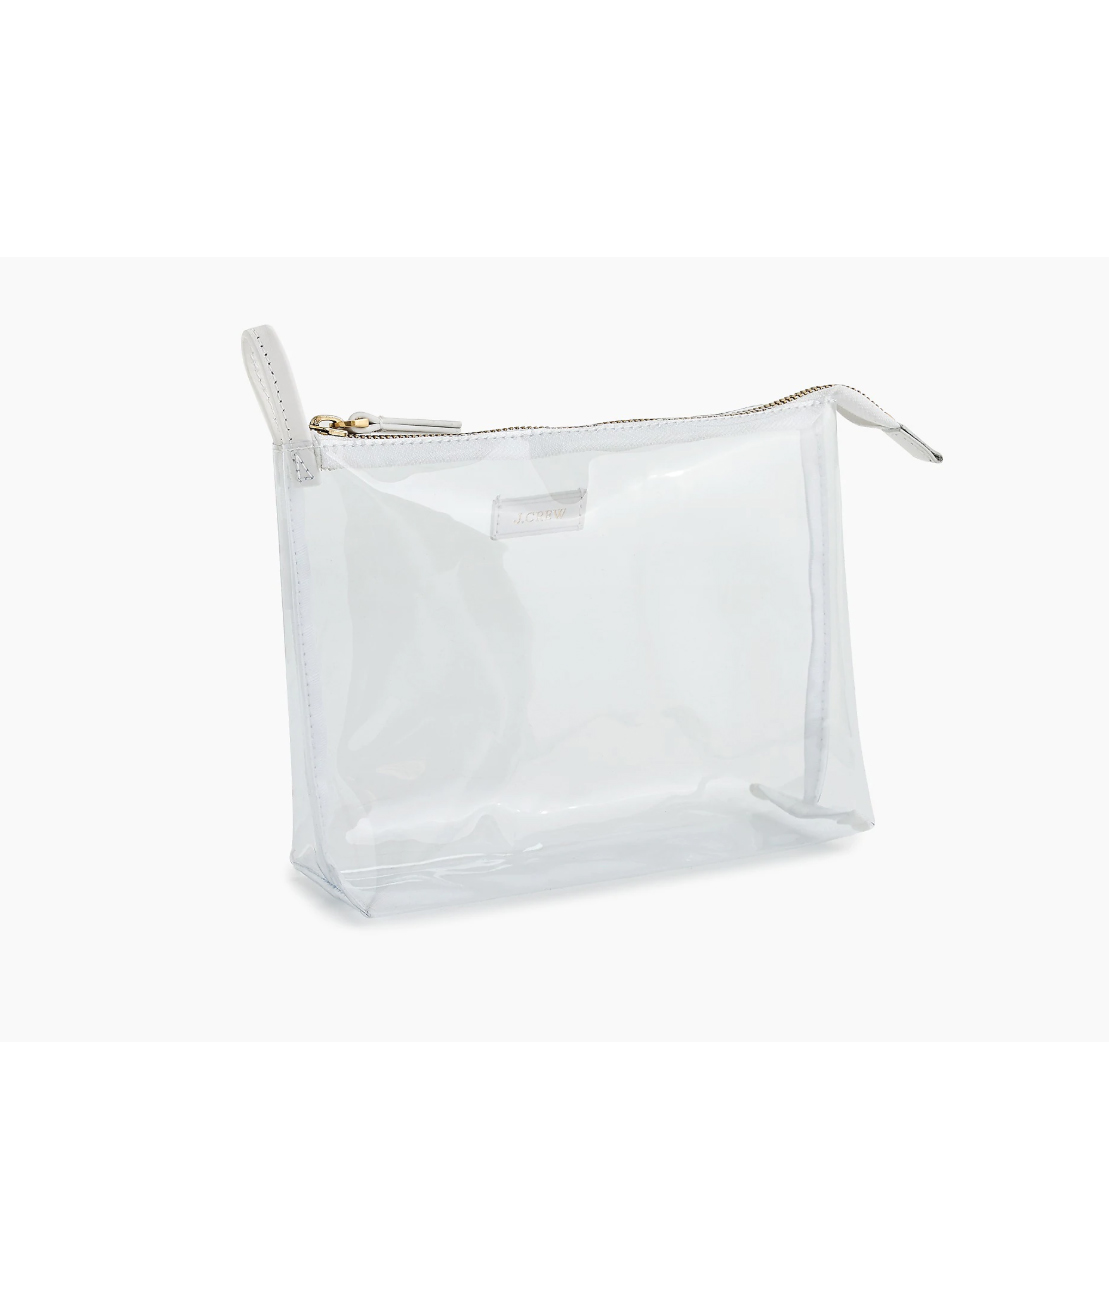 J.Crew Clear Makeup Pouch